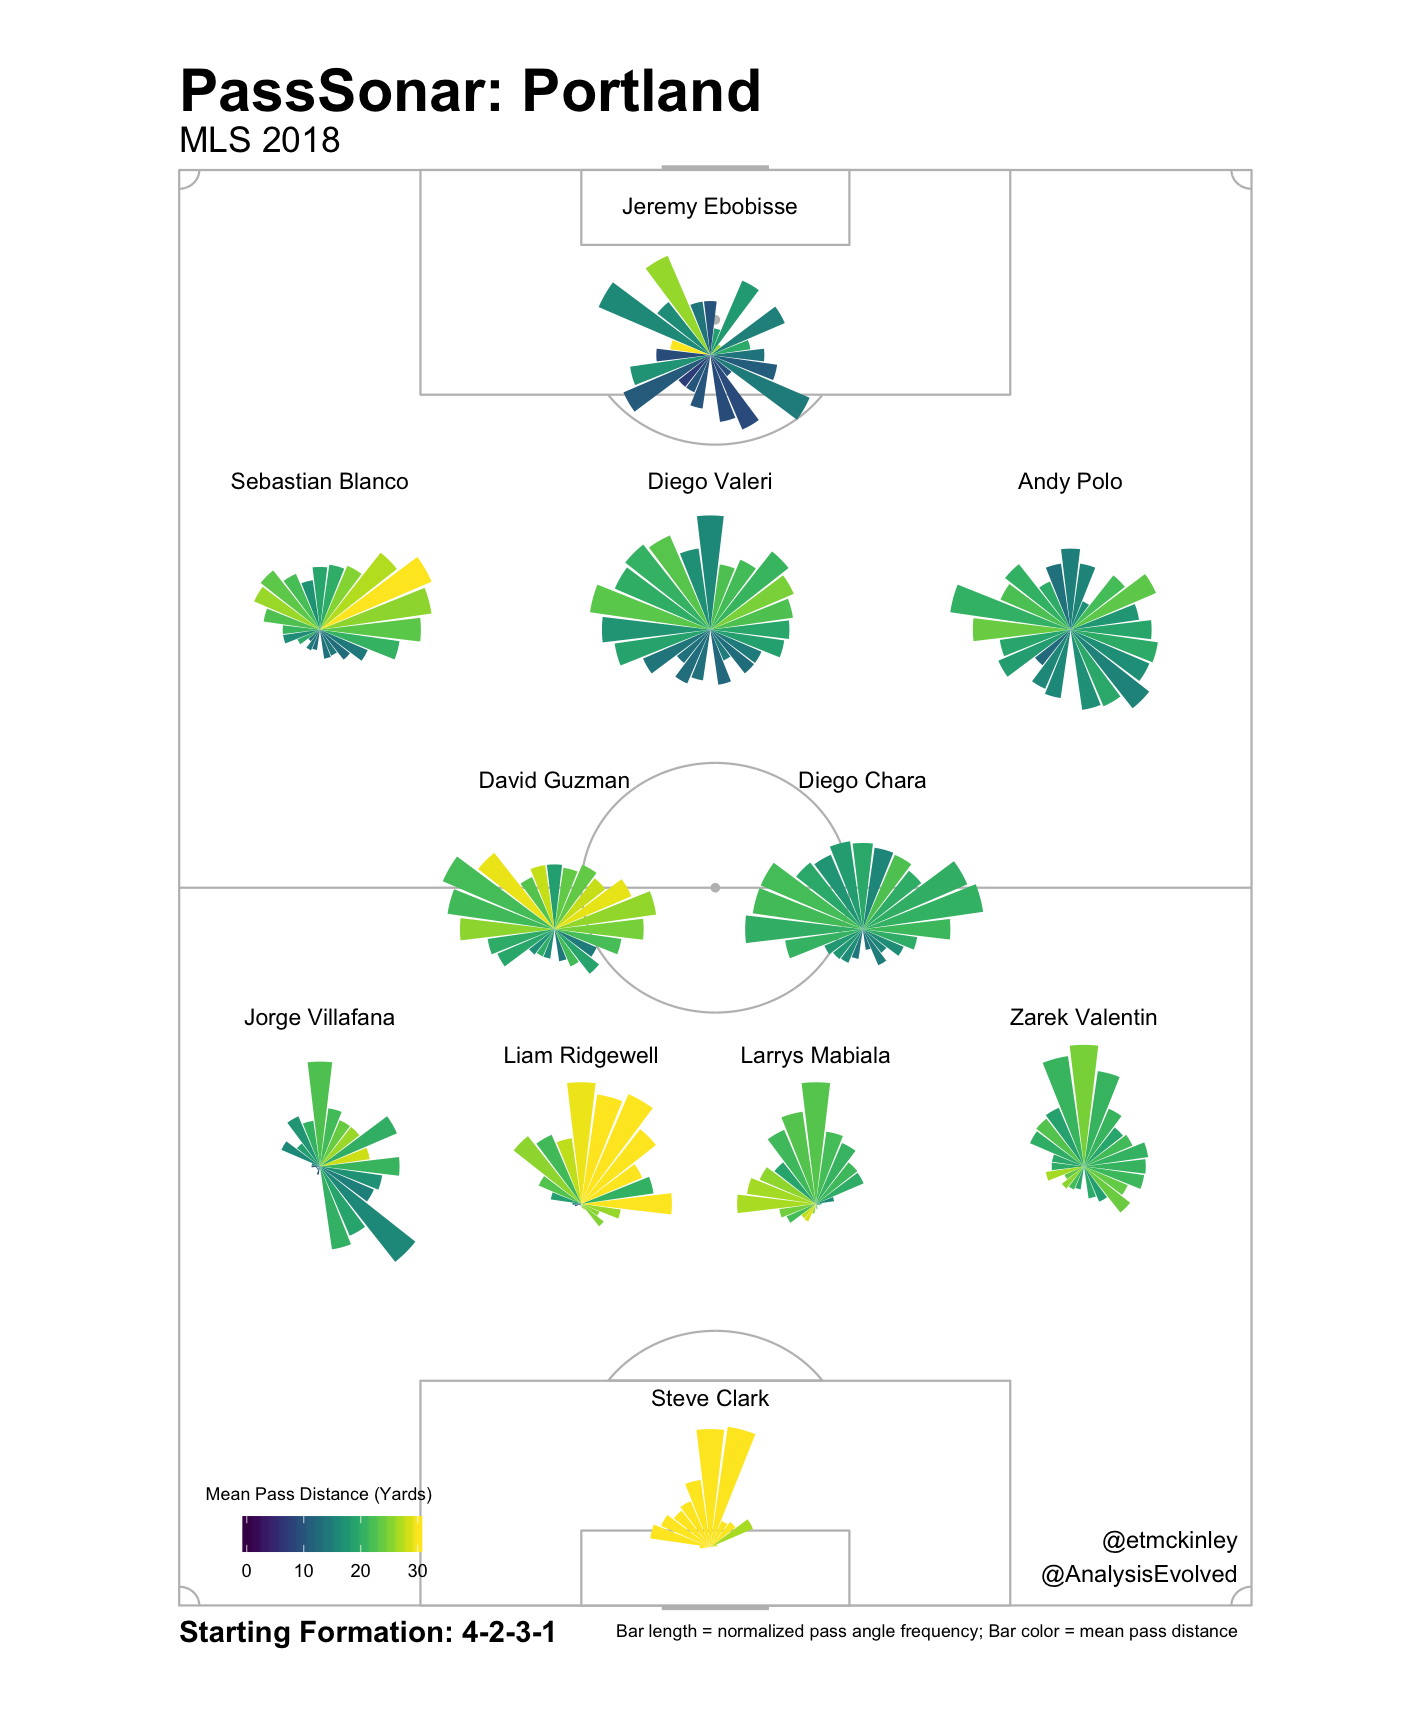 Note: I expect Attinella to start, but based this radar on the Timbers' recent home match vs RSL, because it best reflects their likely lineup against FC Dallas